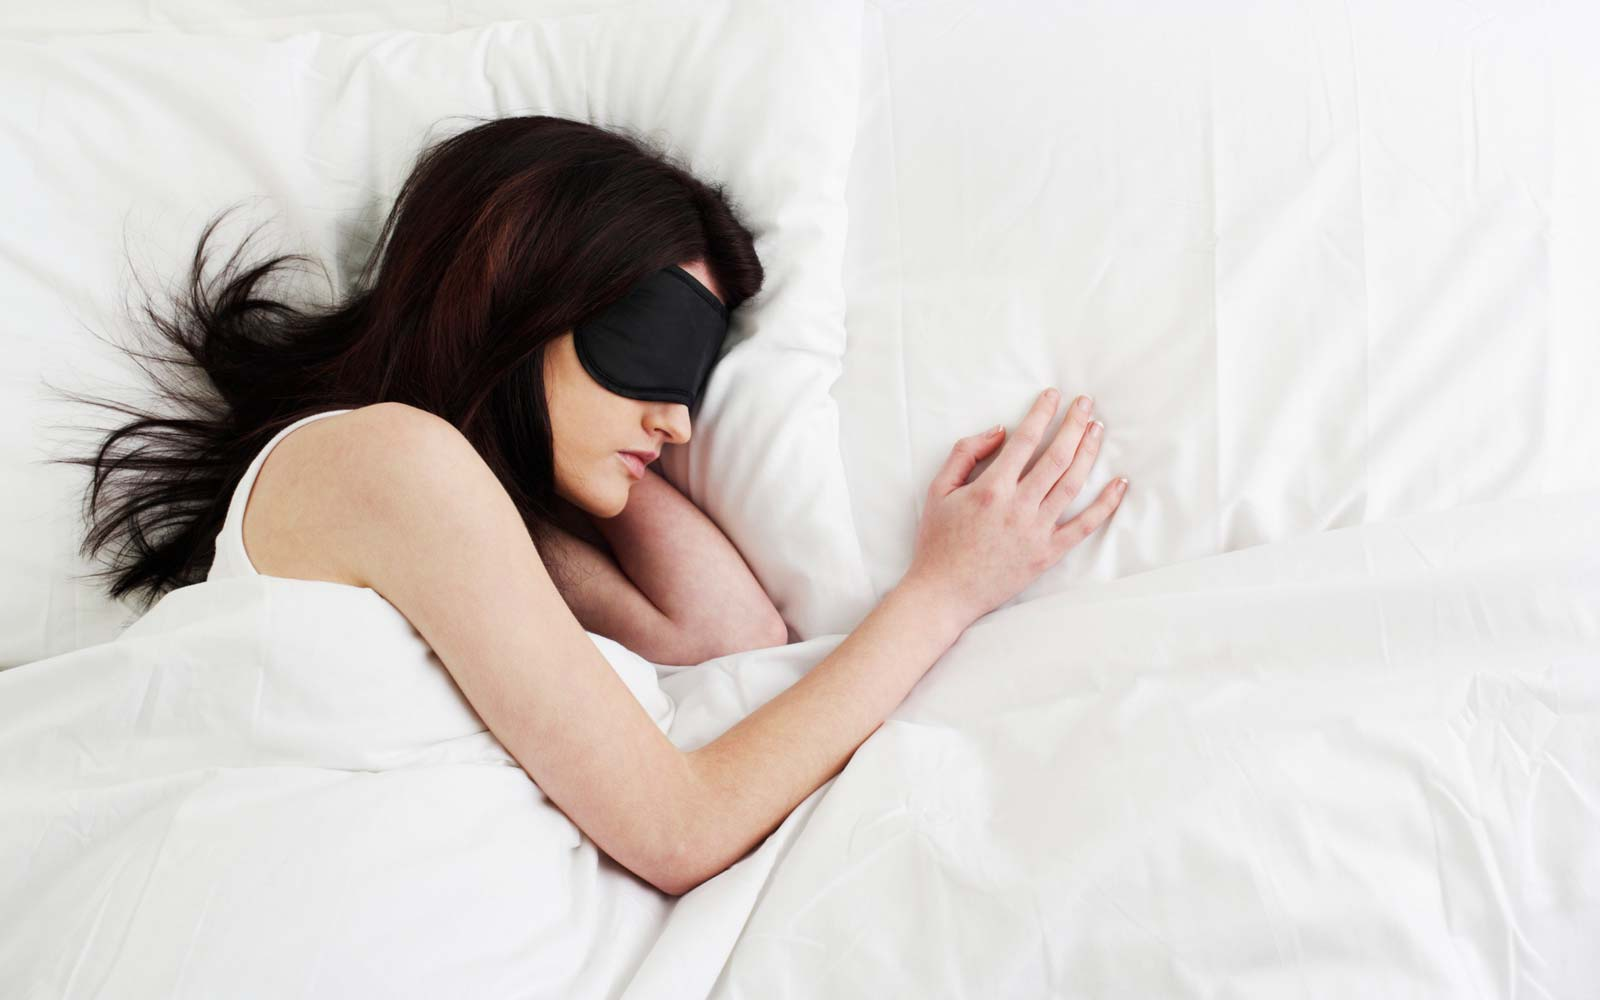 Young woman sleeping with sleep mask